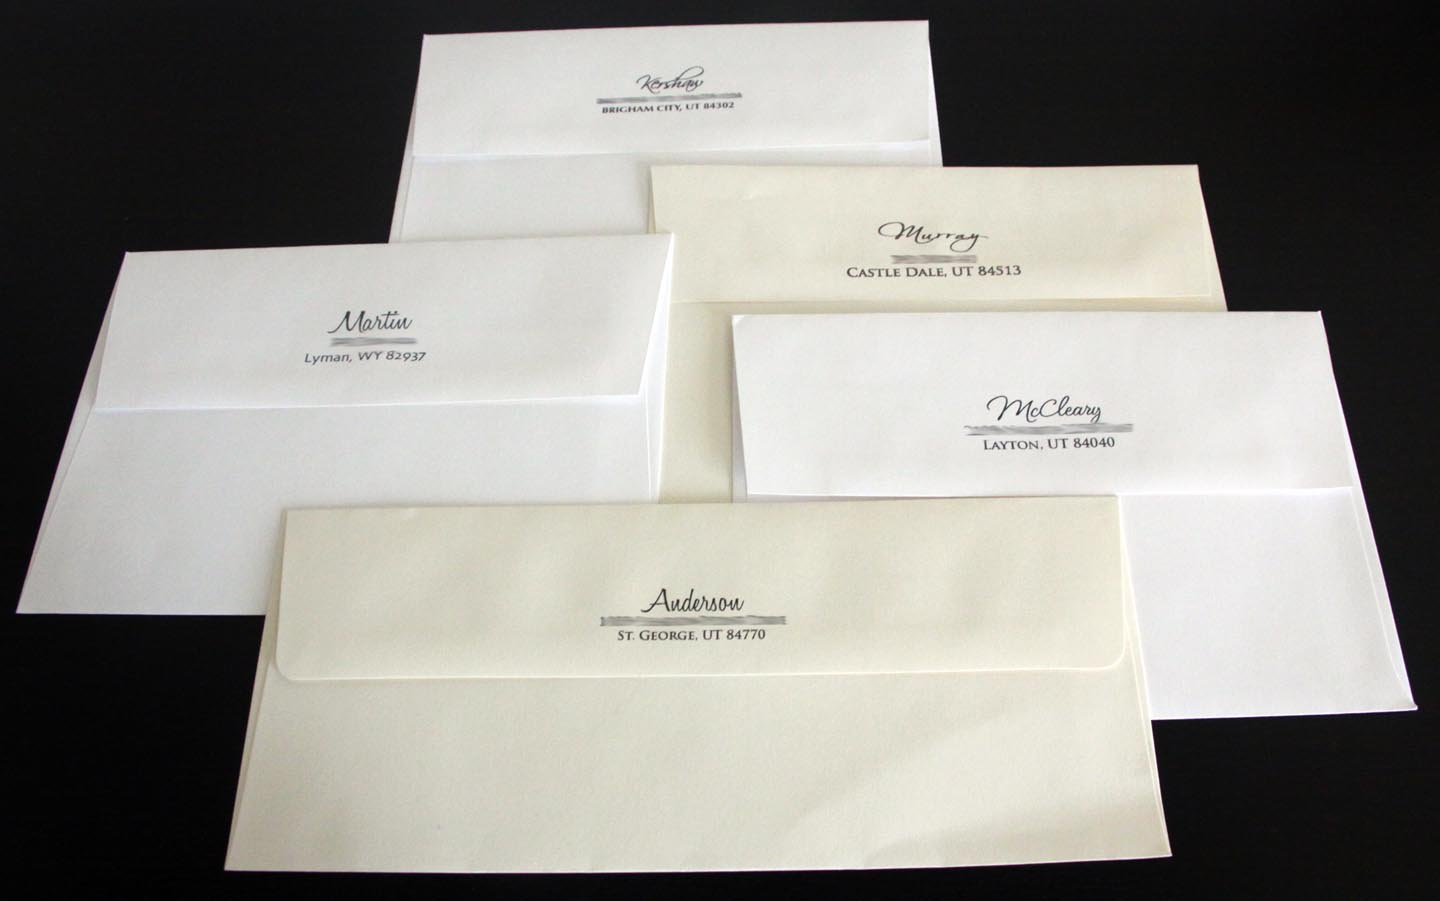 Printing Wedding Invitation Envelopes At Home